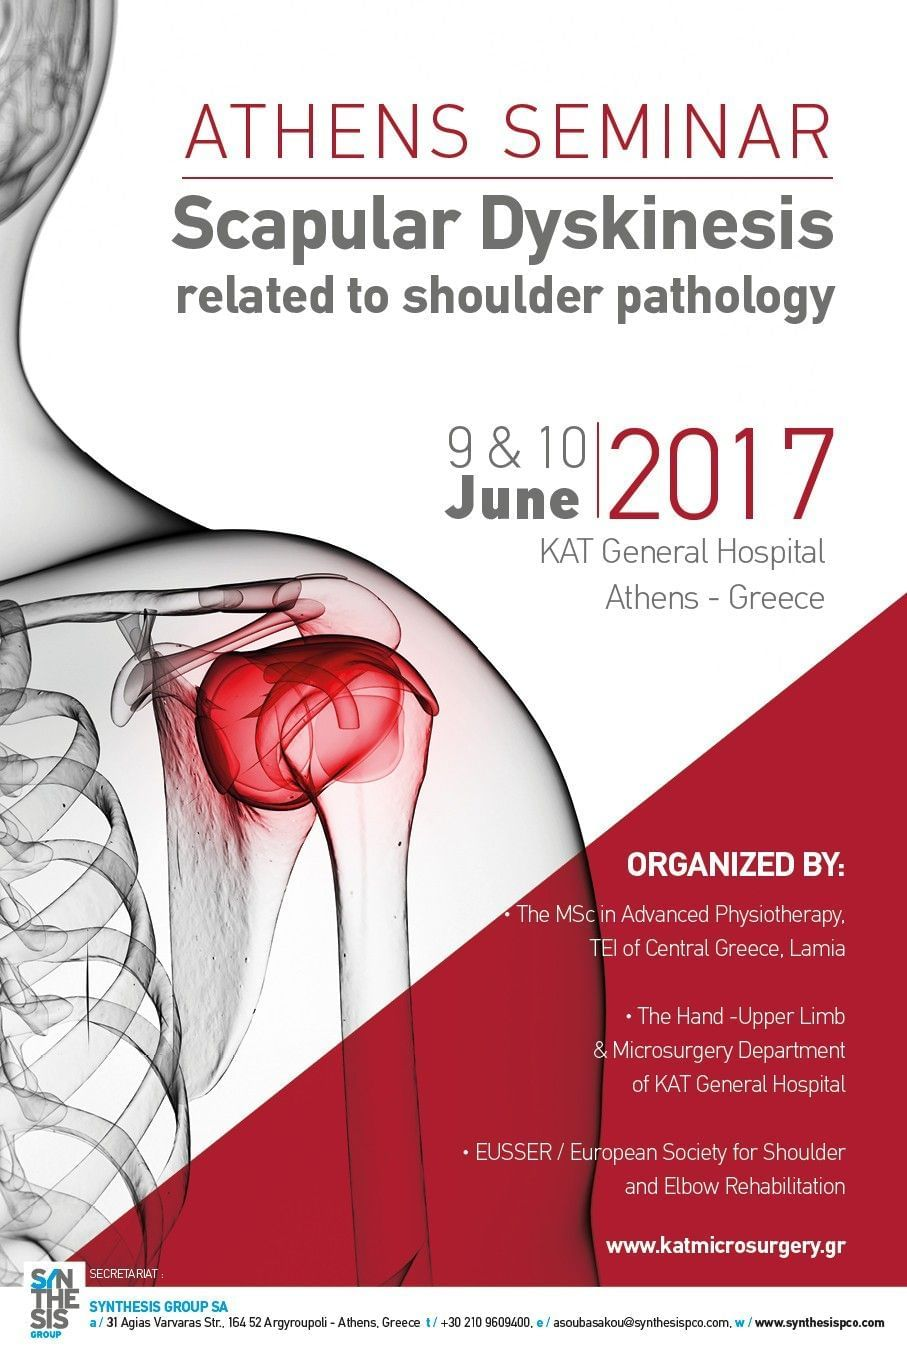 SCAPULAR DYSKINESIS RELATED TO SHOULDER PATHOLOGY - ATHENS SEMINAR